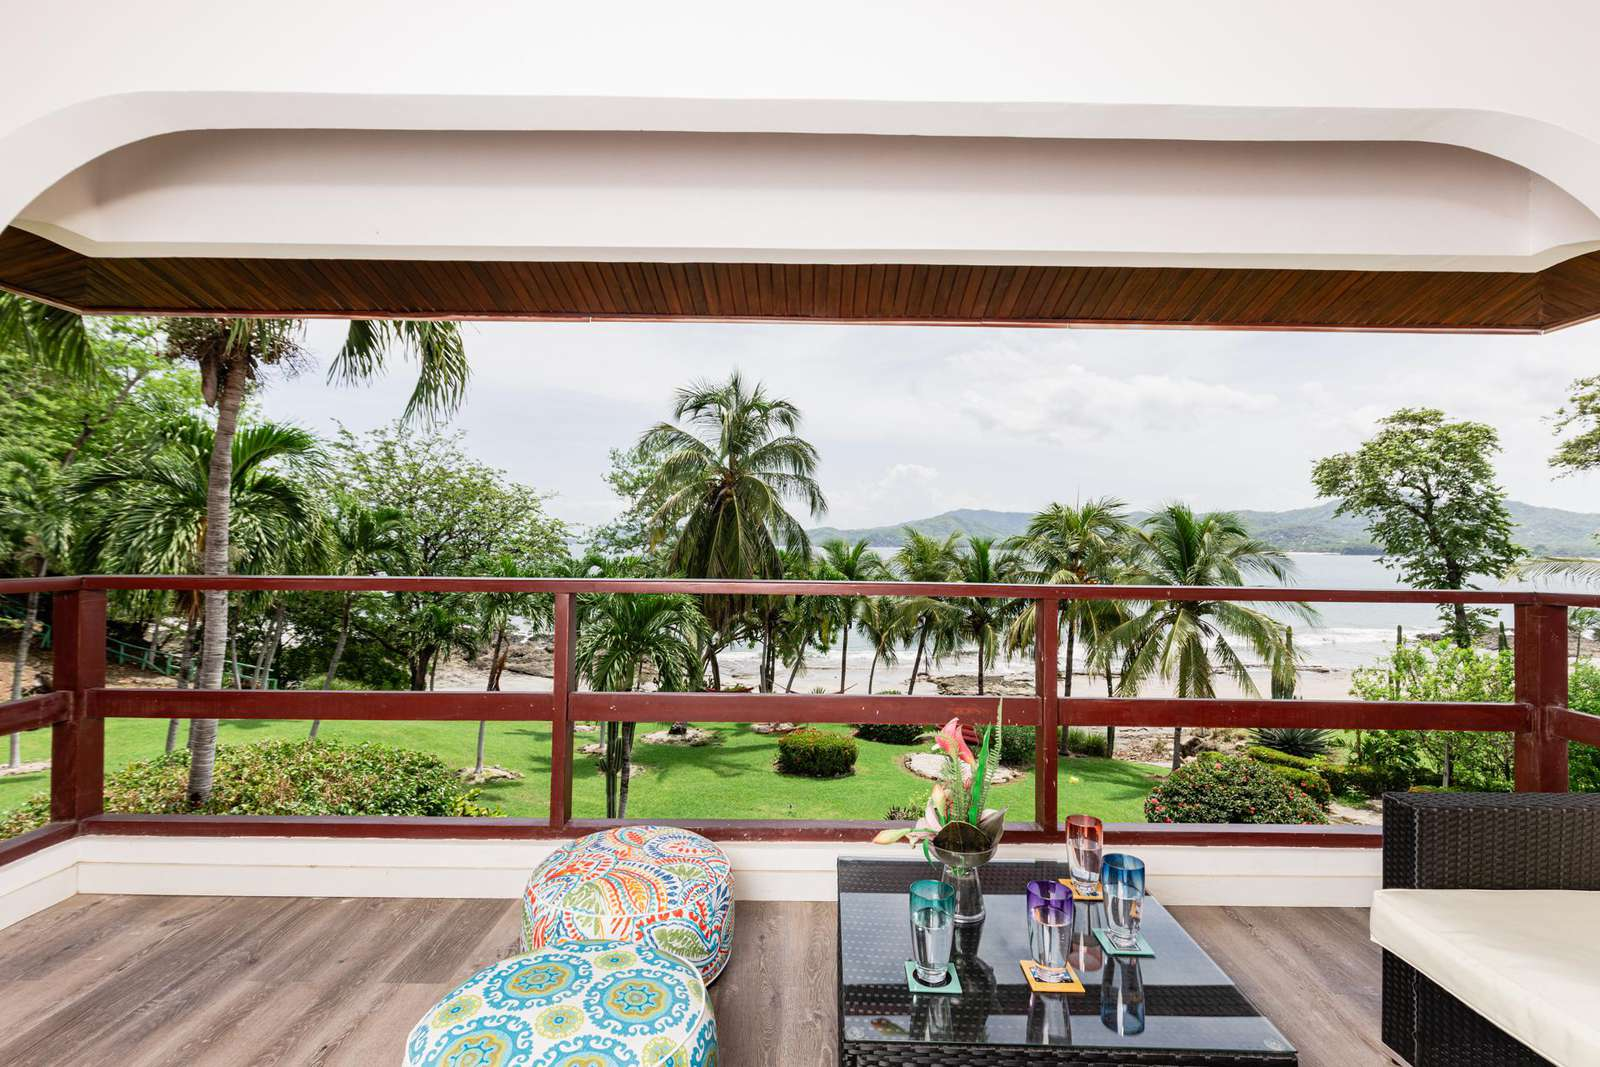 Beachfront location with private balcony